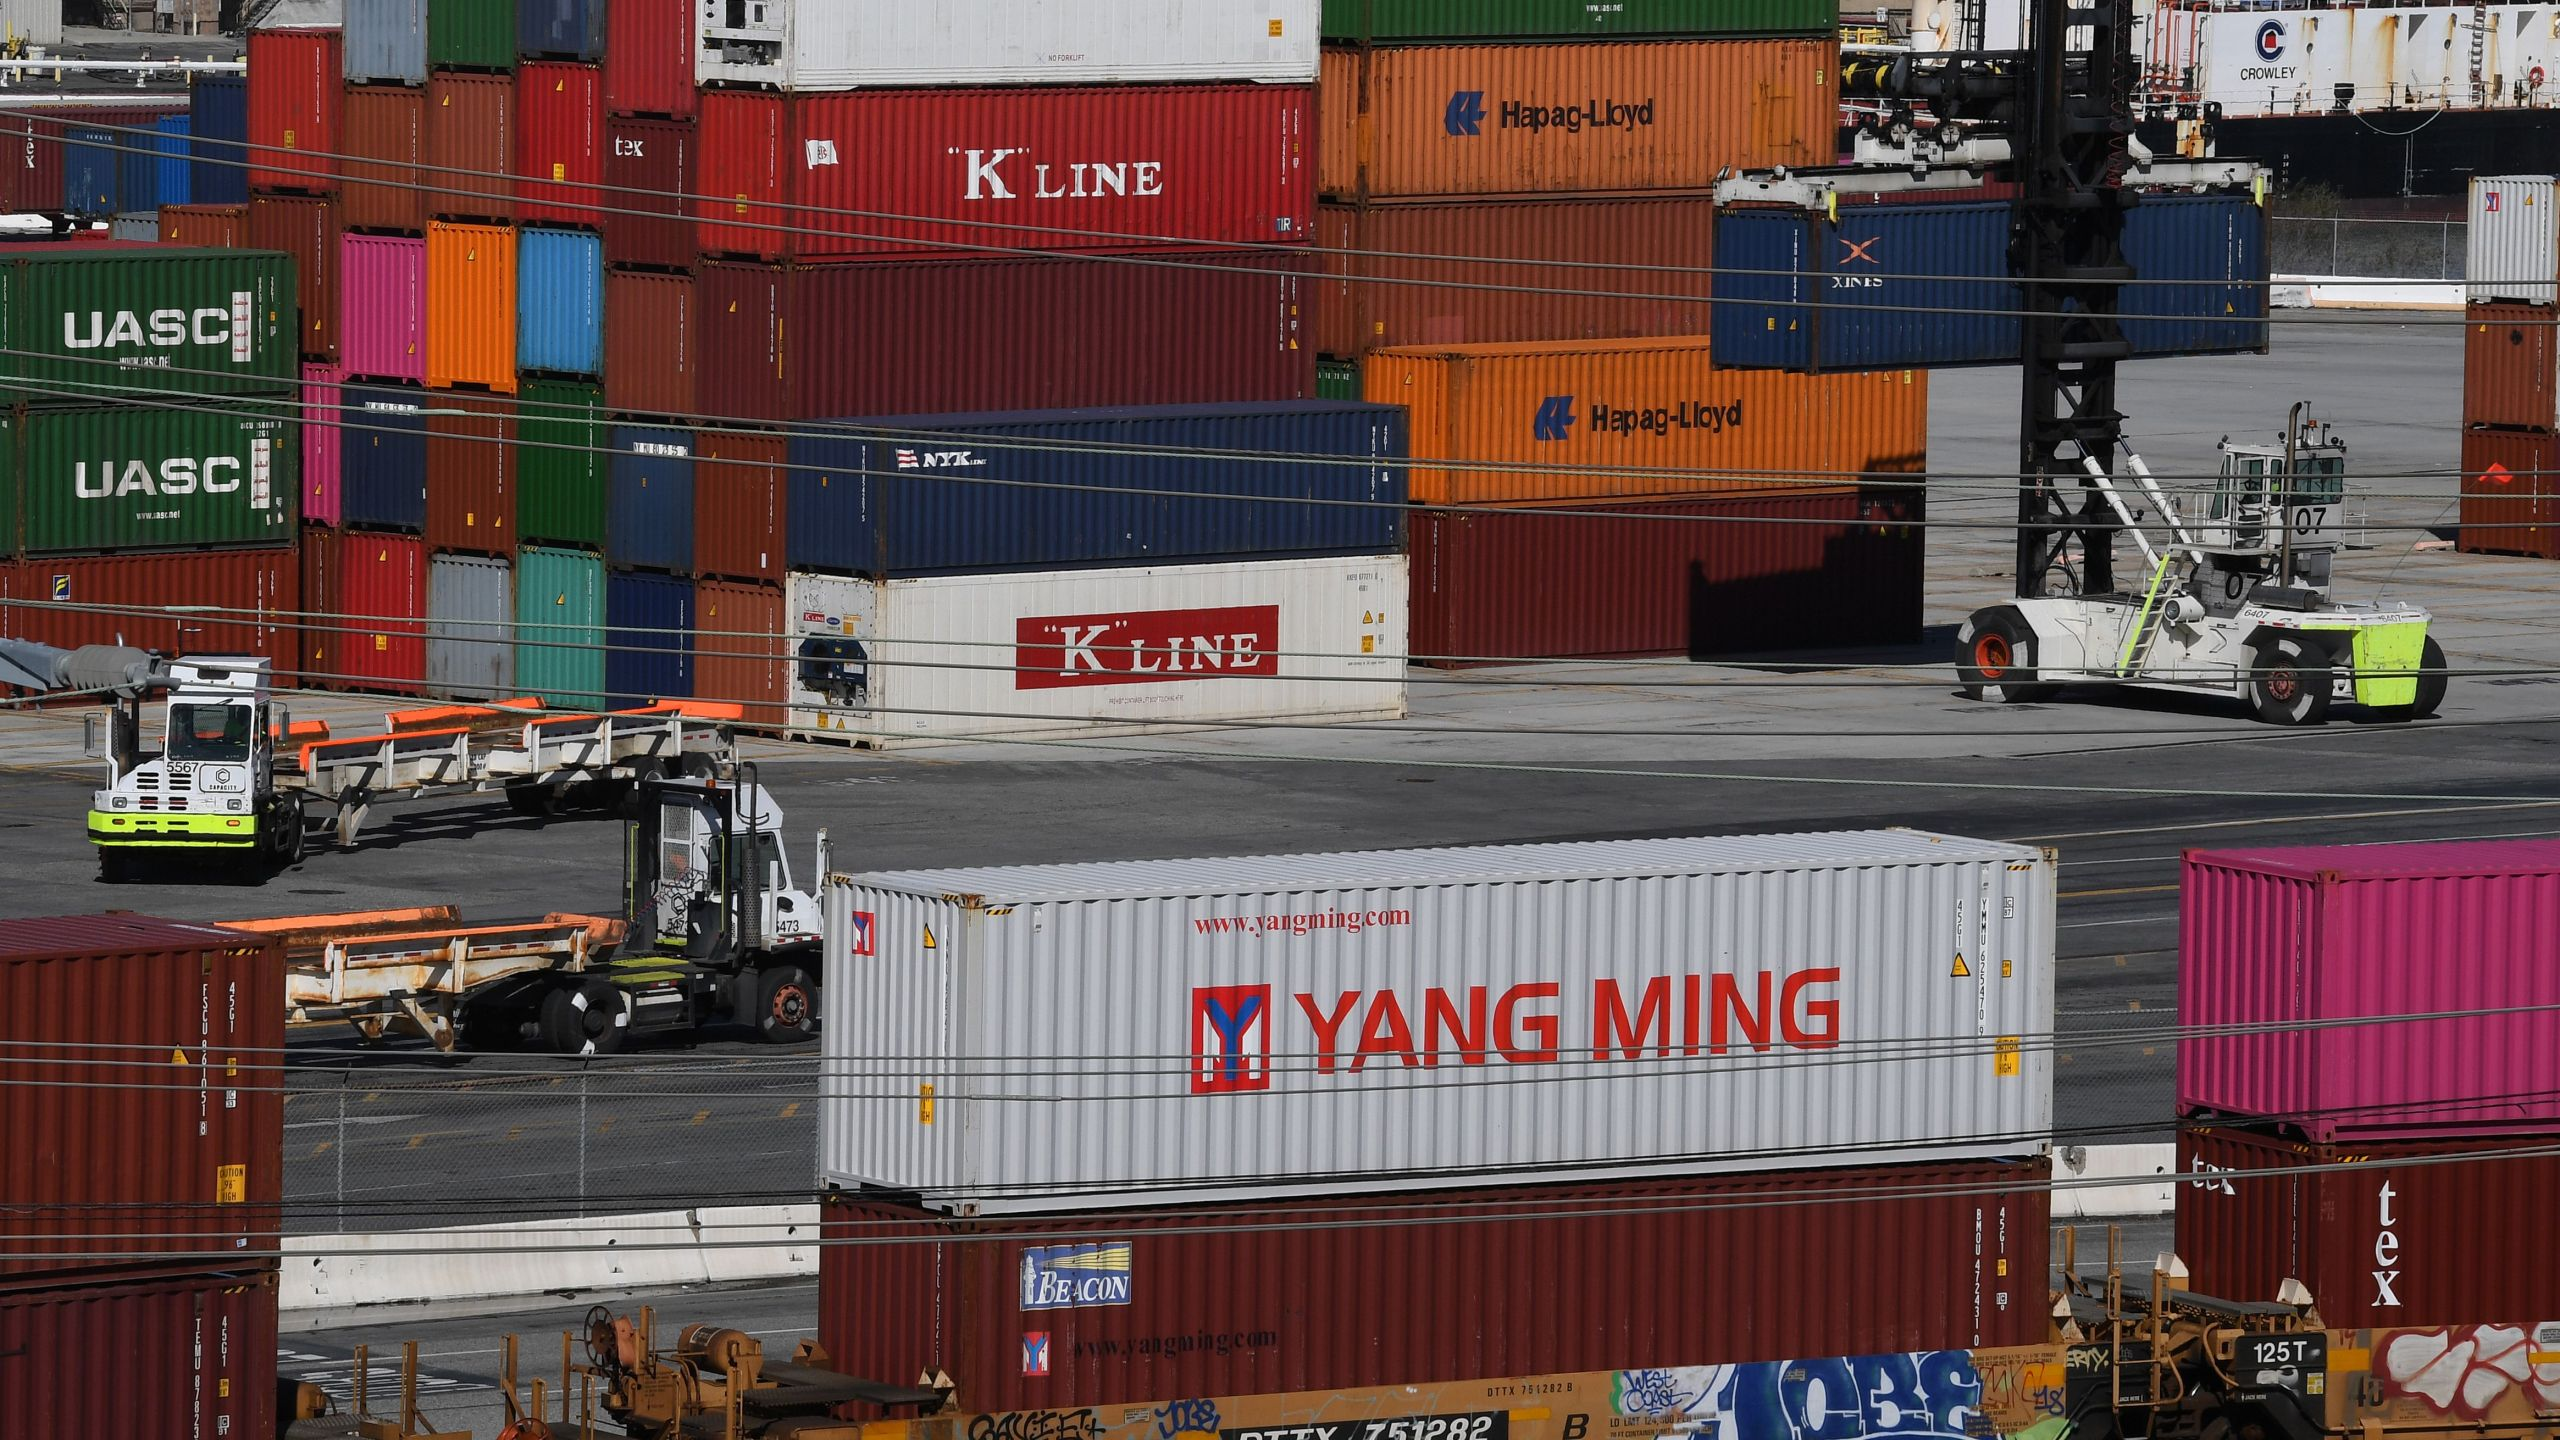 Shipping containers from China and other nations are unloaded at the Long Beach Port in Los Angeles, California on February 16, 2019. (Credit: MARK RALSTON/AFP/Getty Images)